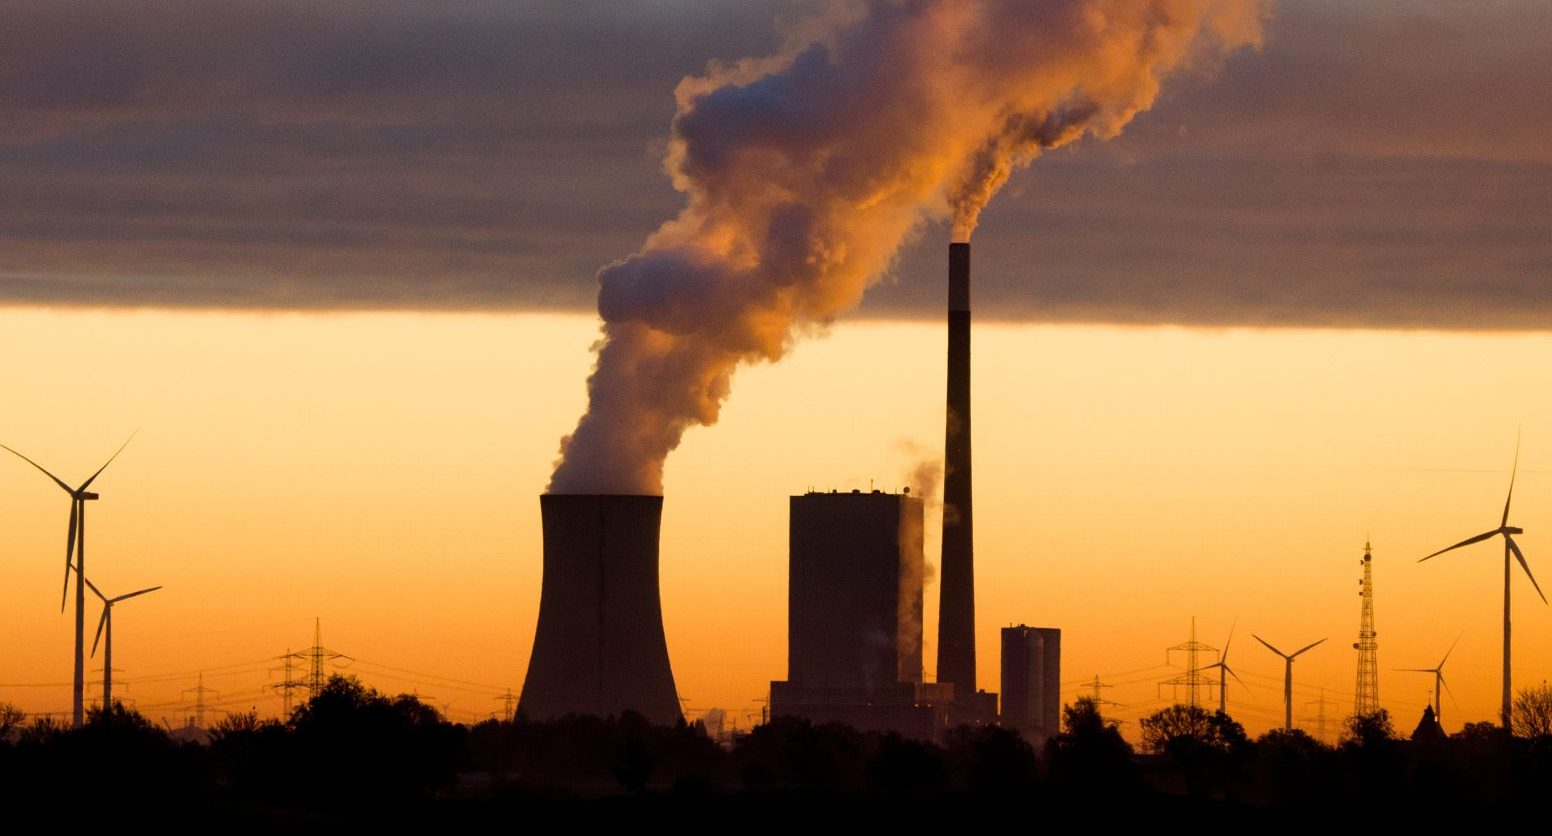 Hydrostor plans to turn closing coal power plants into giant